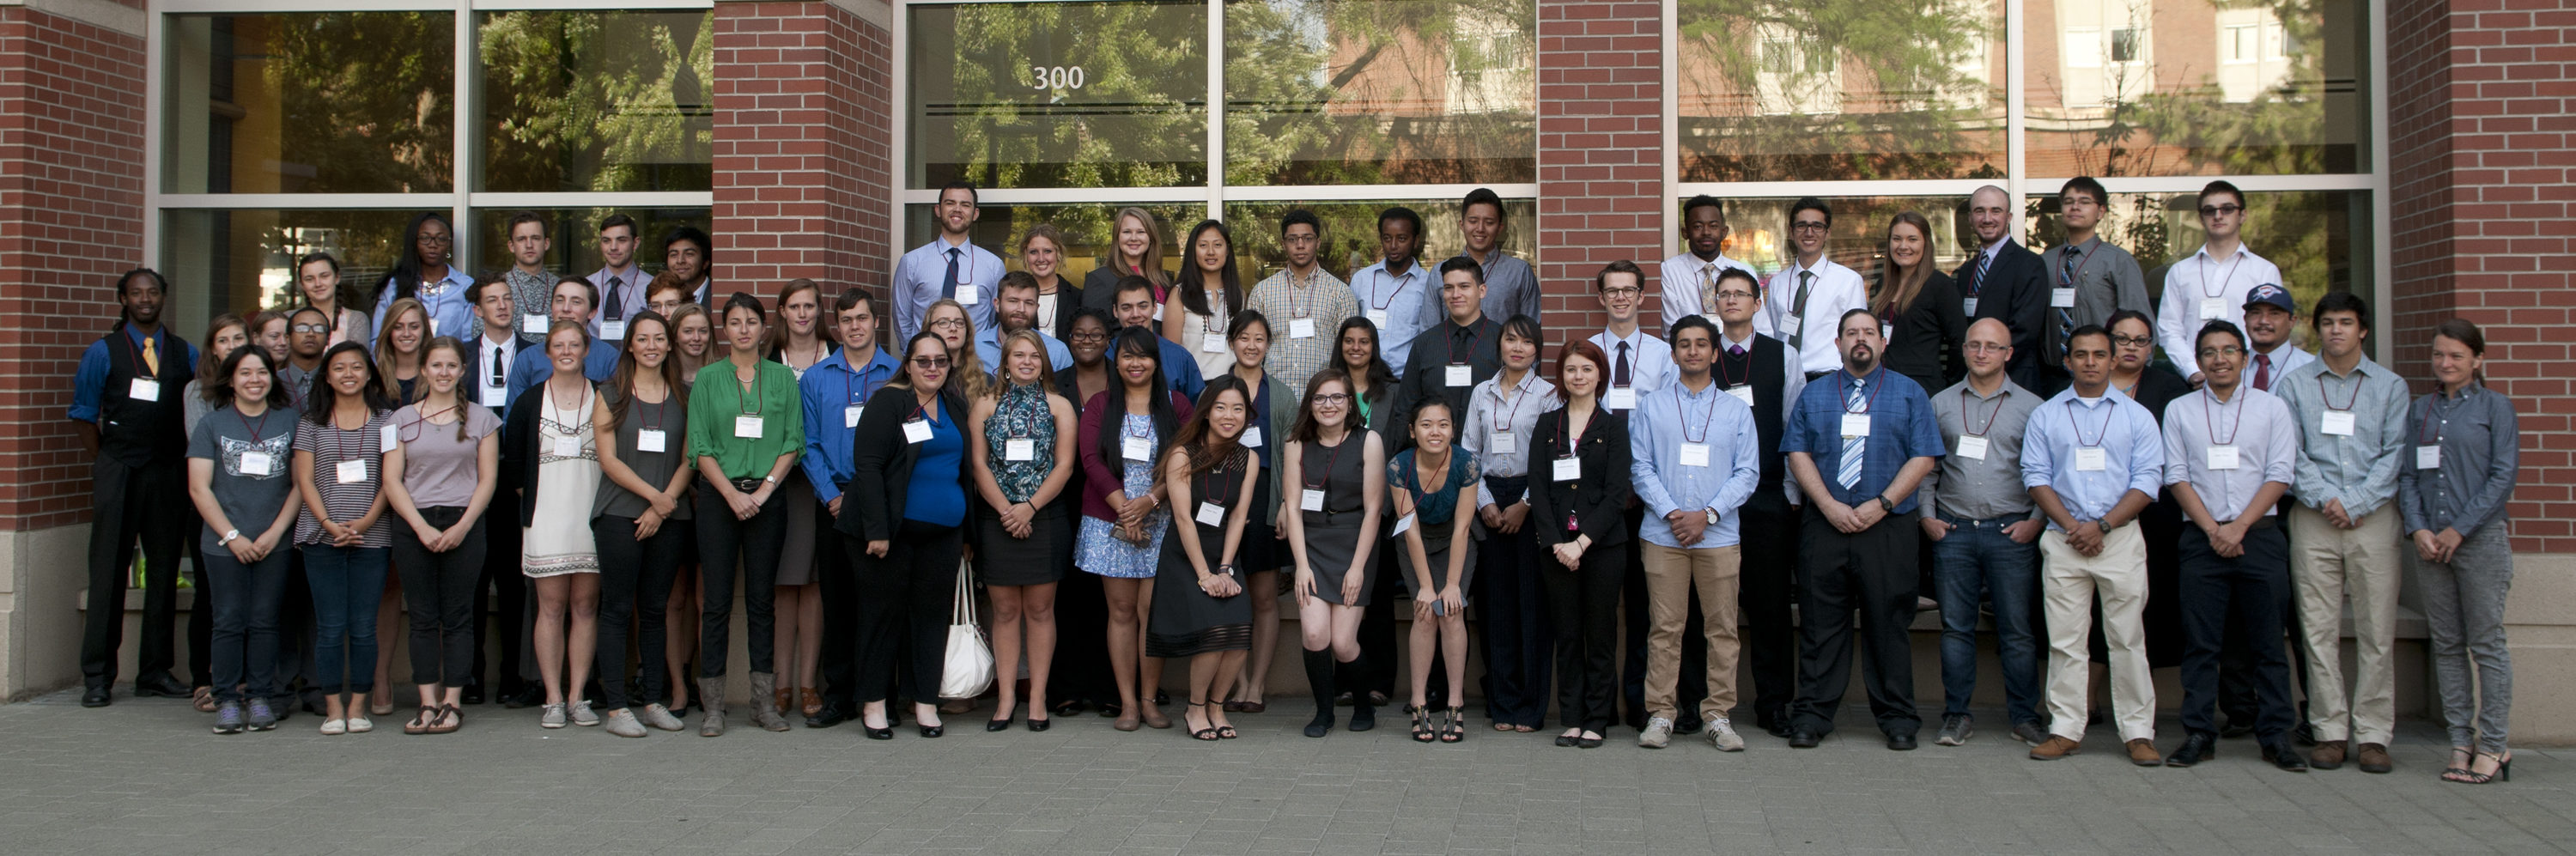 Summer undergraduate research students.